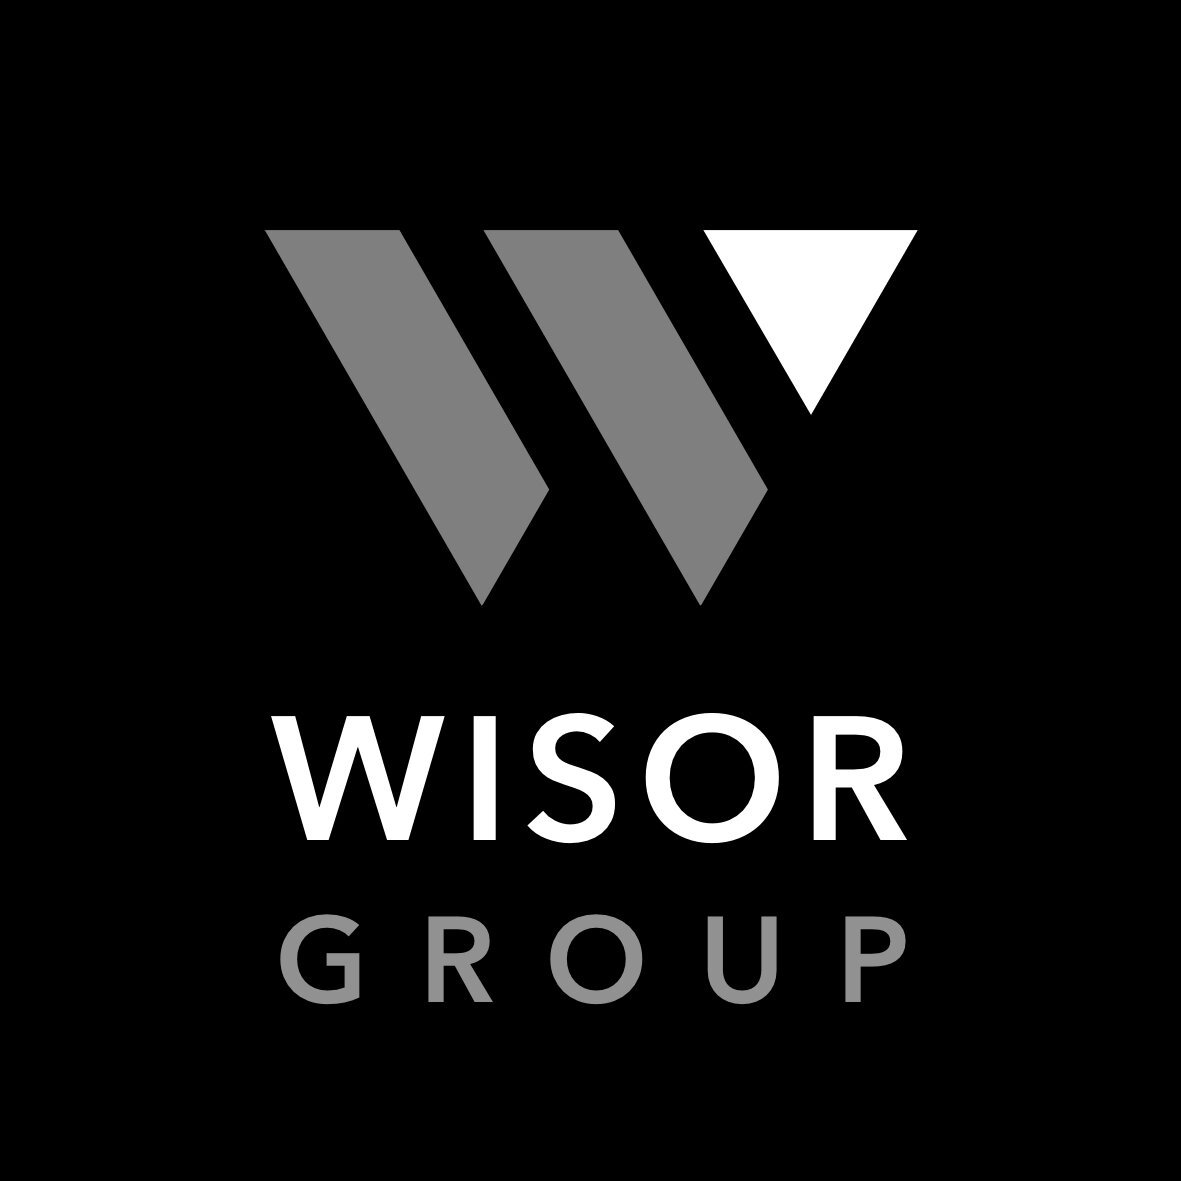 Wisor Group Logo.png  For download click on image.